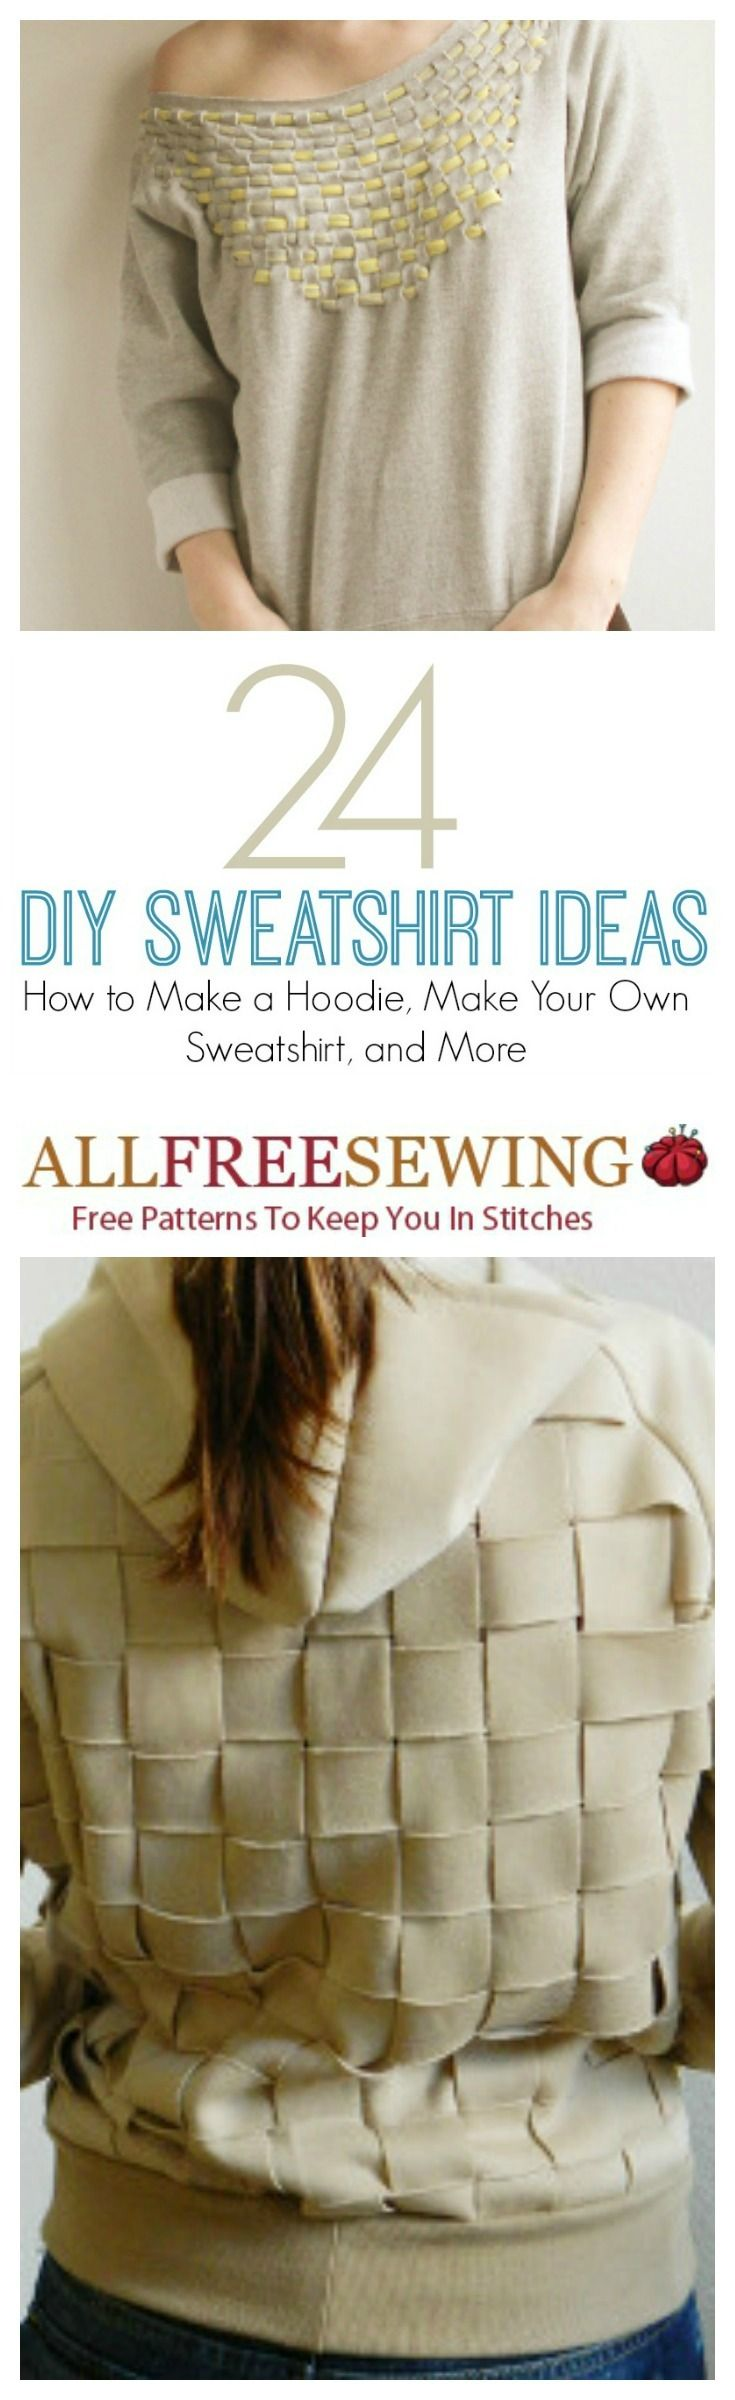 24 DIY Sweatshirt Ideas: How to Make a Hoodie, Make Your Own Sweatshirt, and More | AllFreeSewing.com